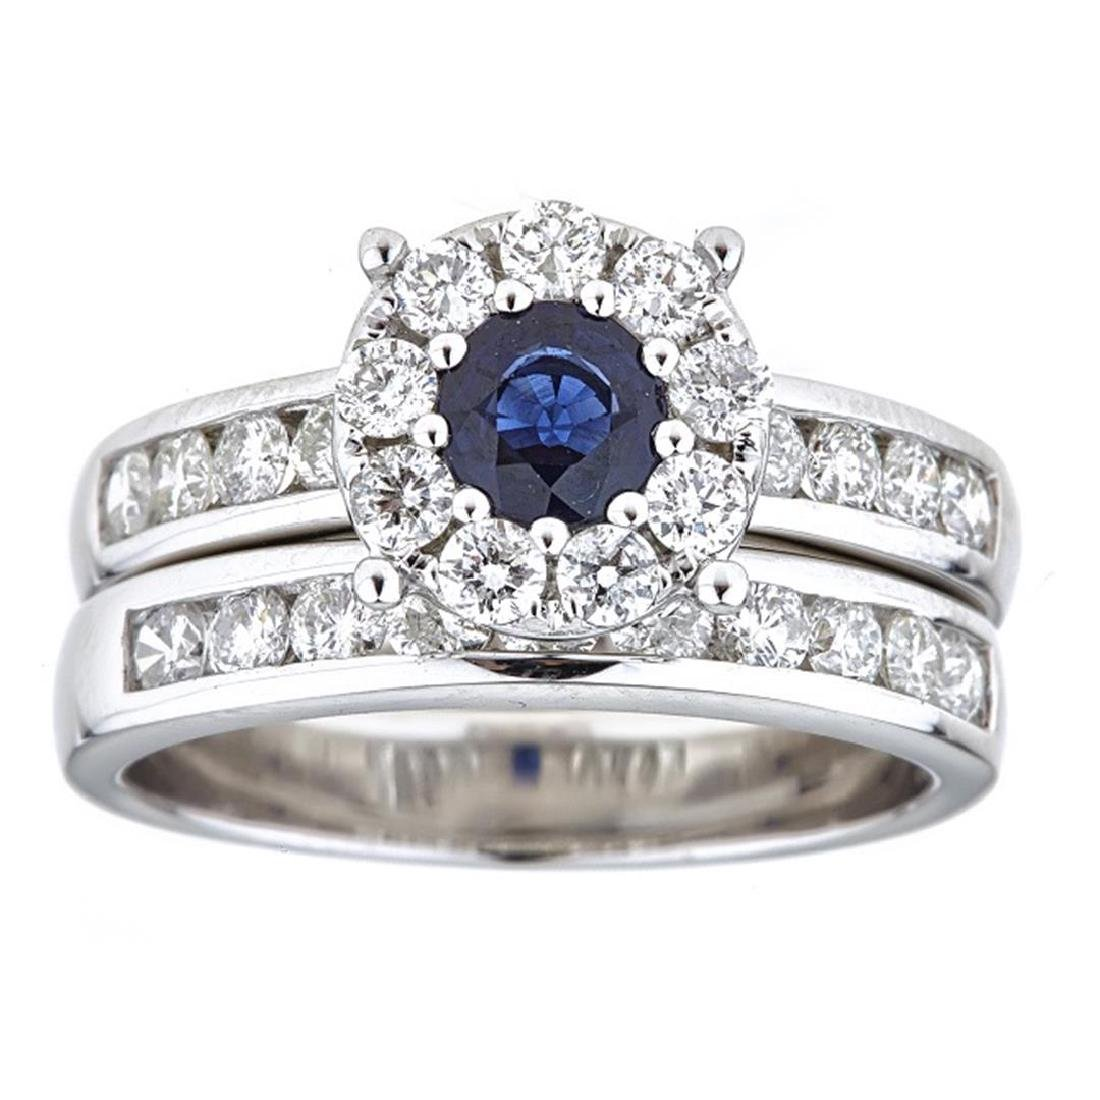 0.59 ctw Sapphire and Diamond Ring - 18KT White Gold